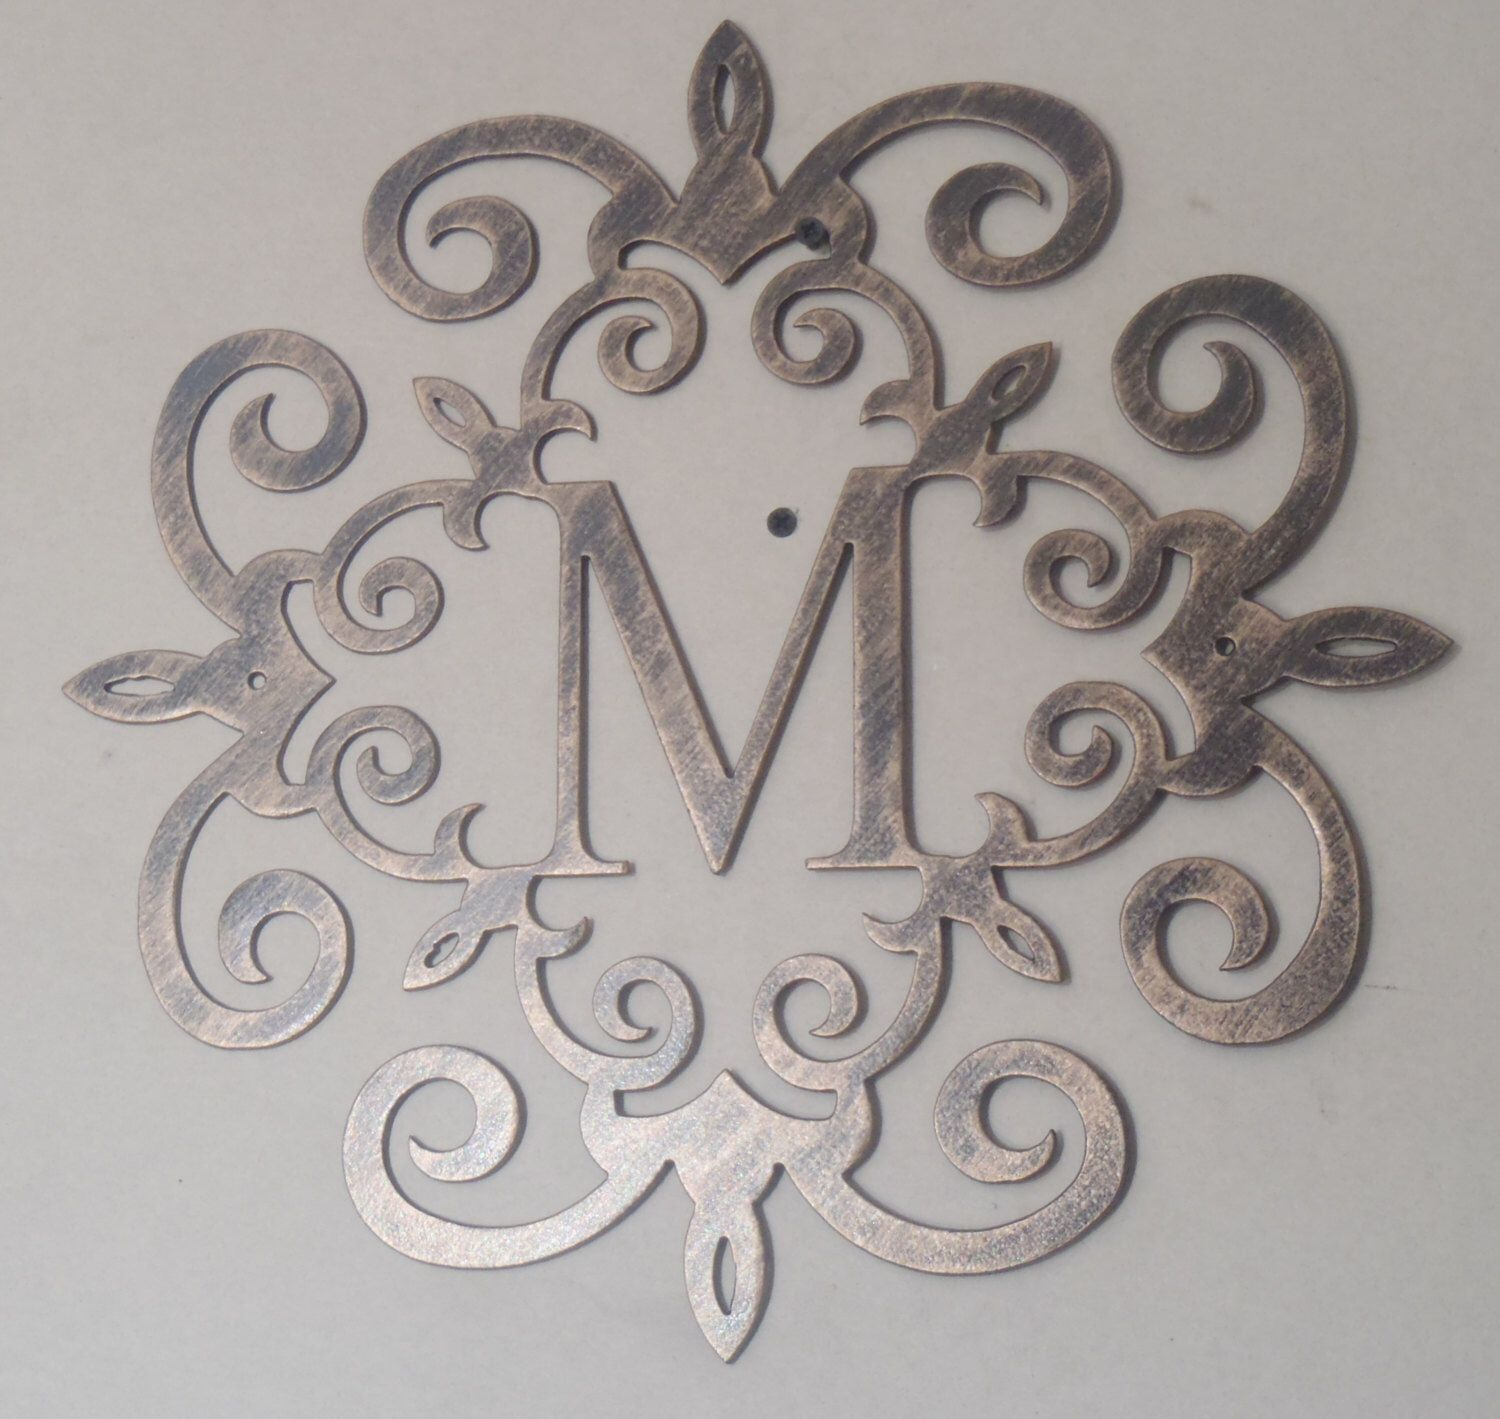 Family Initial Monogram Inside A Metal Scroll With Any Letter Wall Decor Art Color Black Coppery Antique Look Finish At Checkout